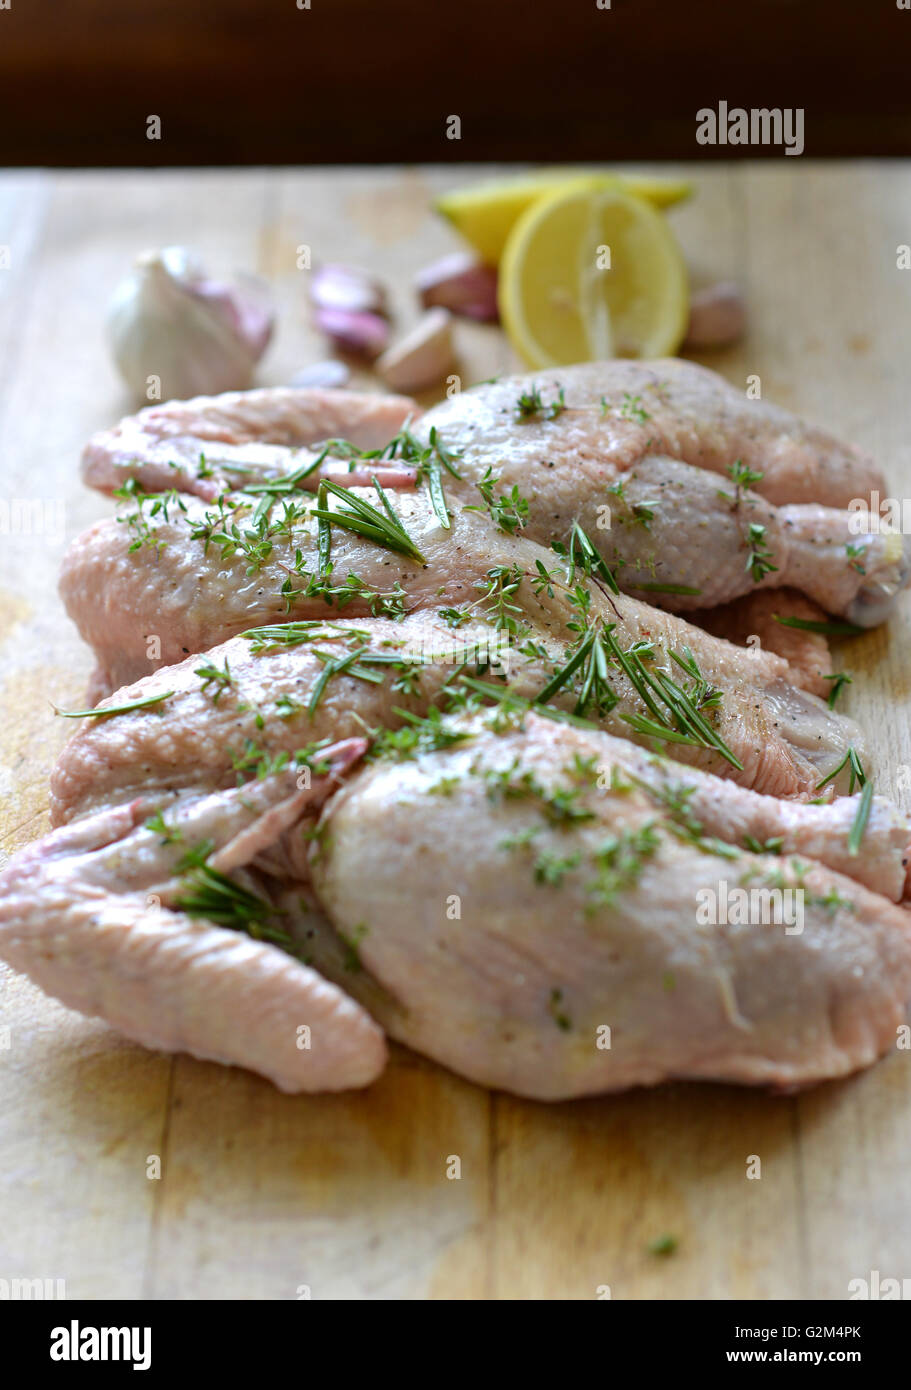 Raw spatchcock (butterfly) chicken and herbs - Stock Image